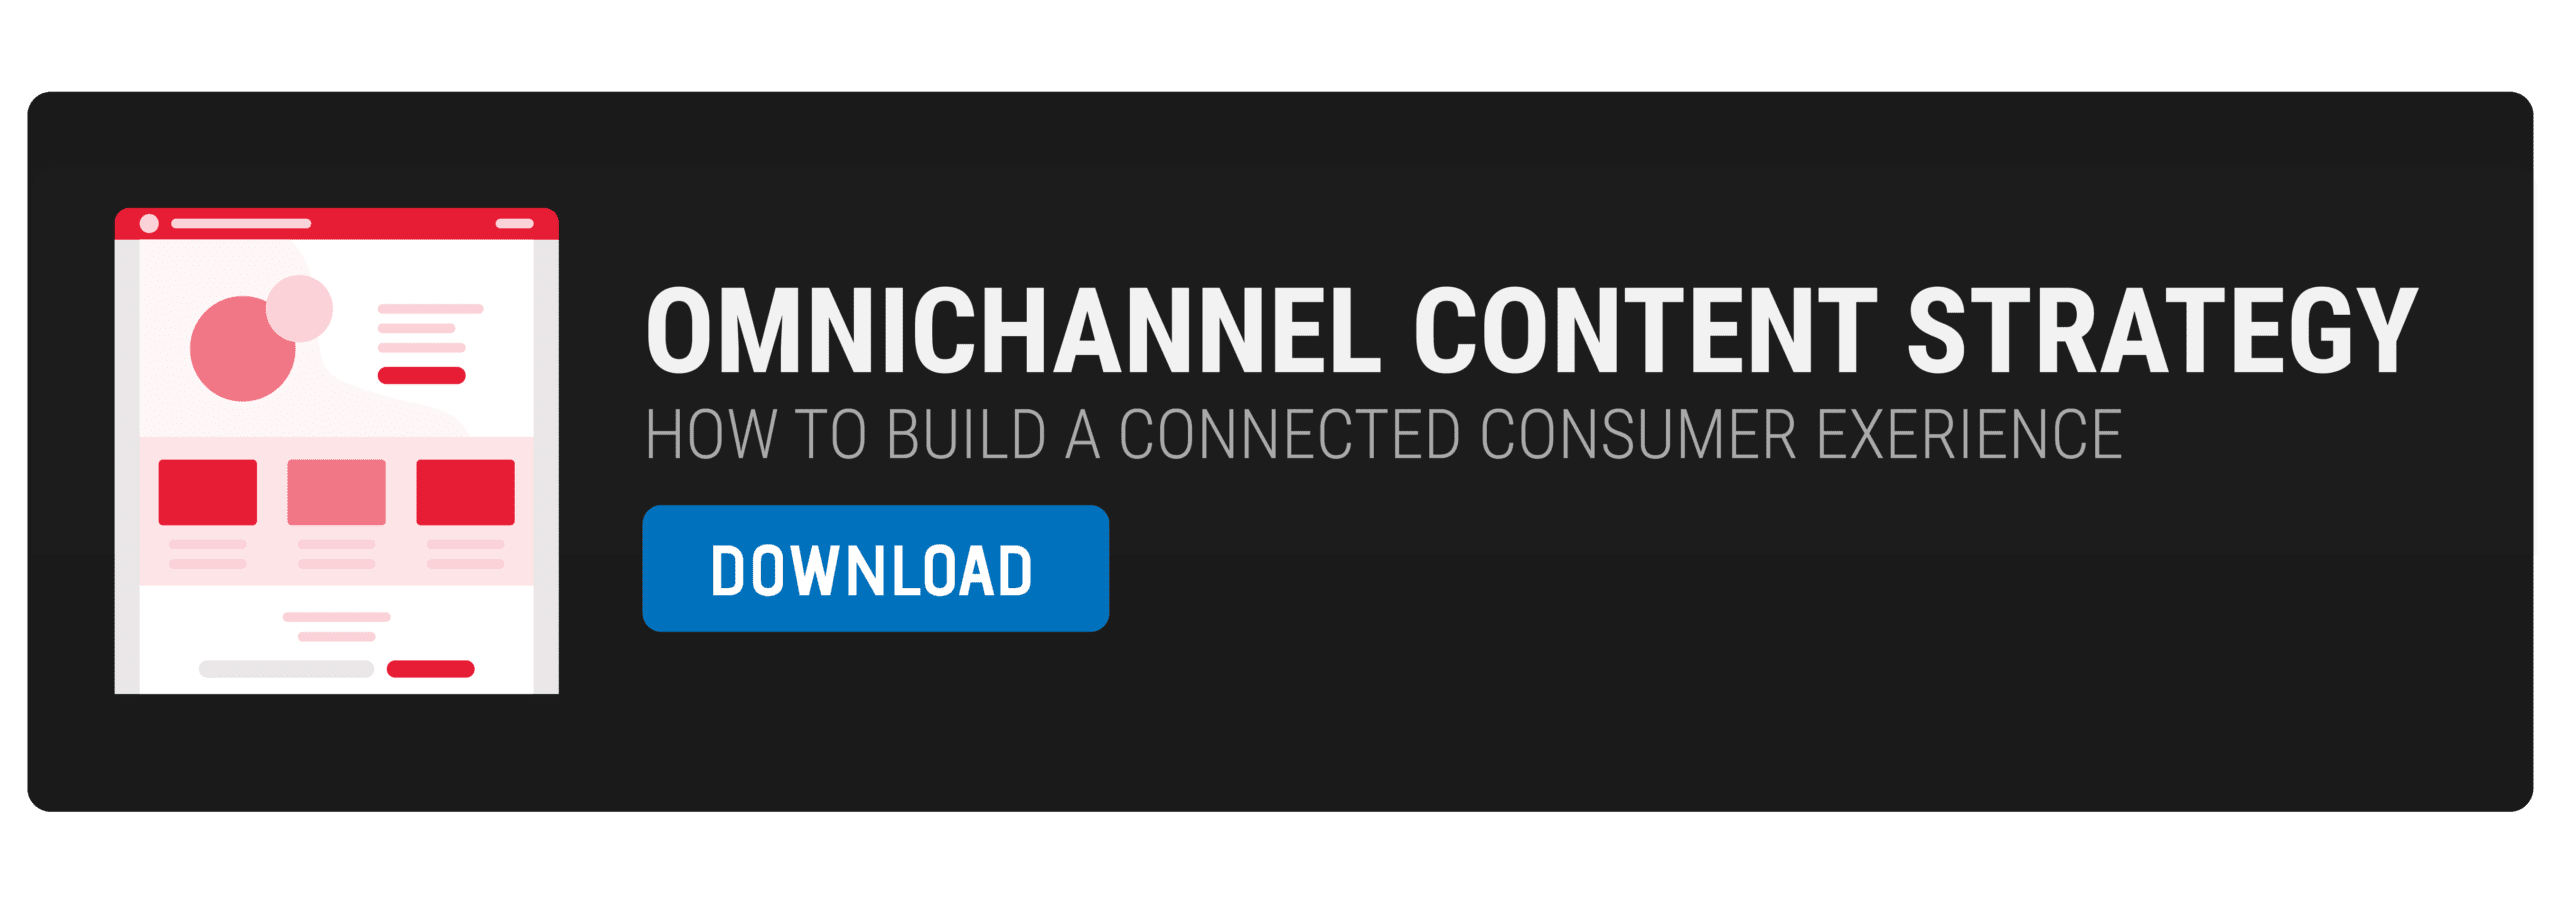 Download The Omnichannel Content Strategy Guide.